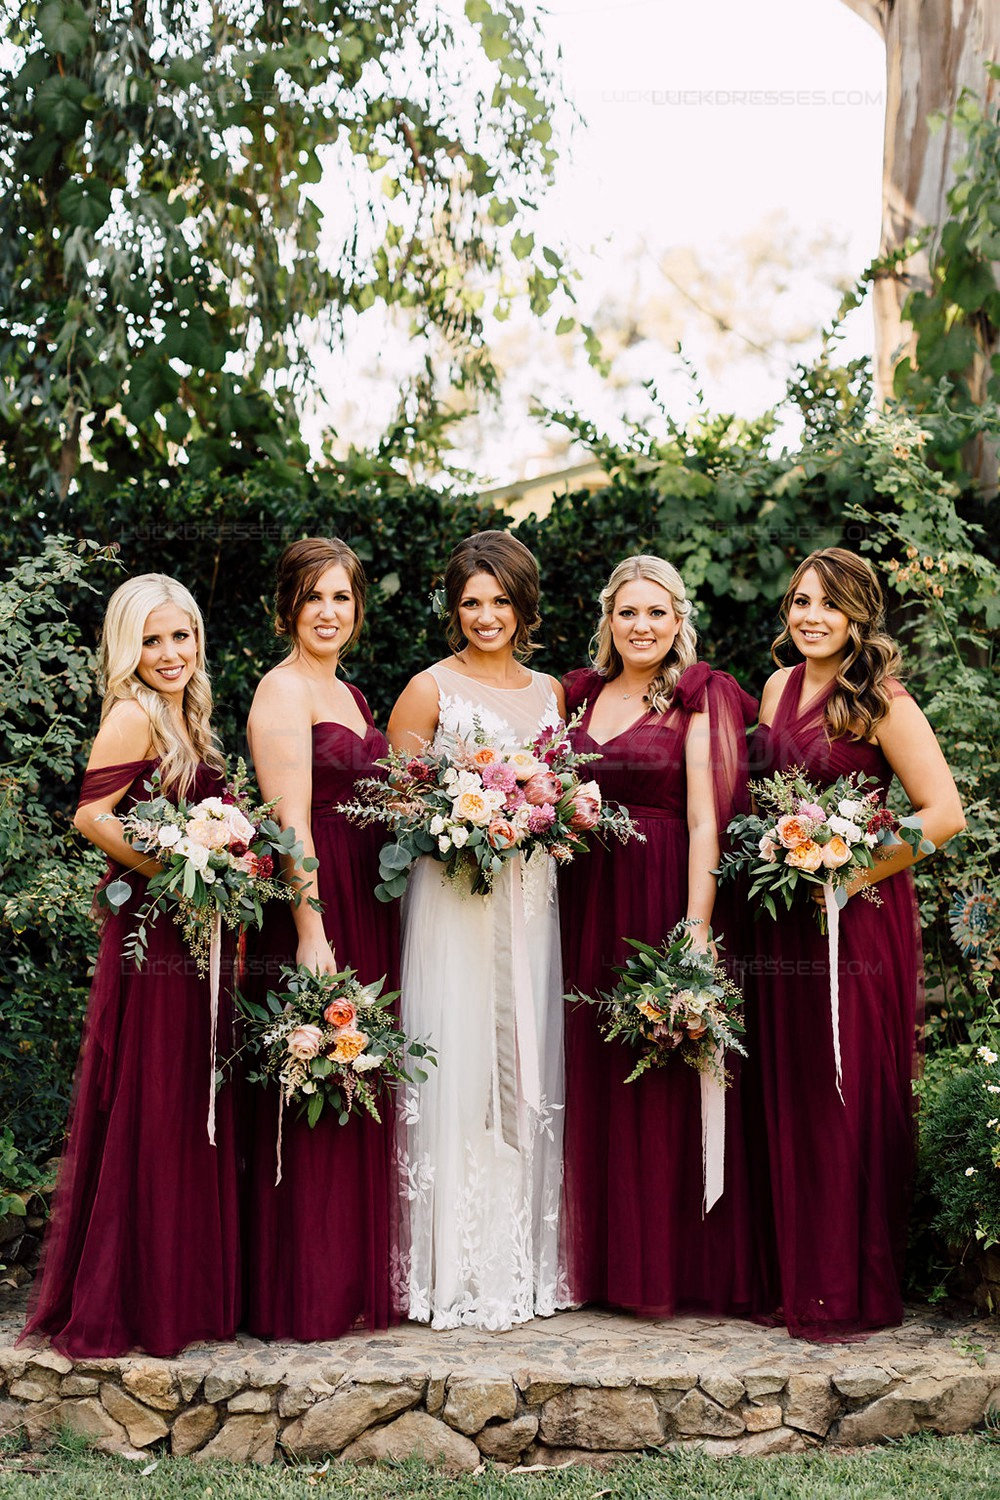 Long burgundy wedding guest dresses bridesmaid dresses 3010194 for Dresses for wedding bridesmaid